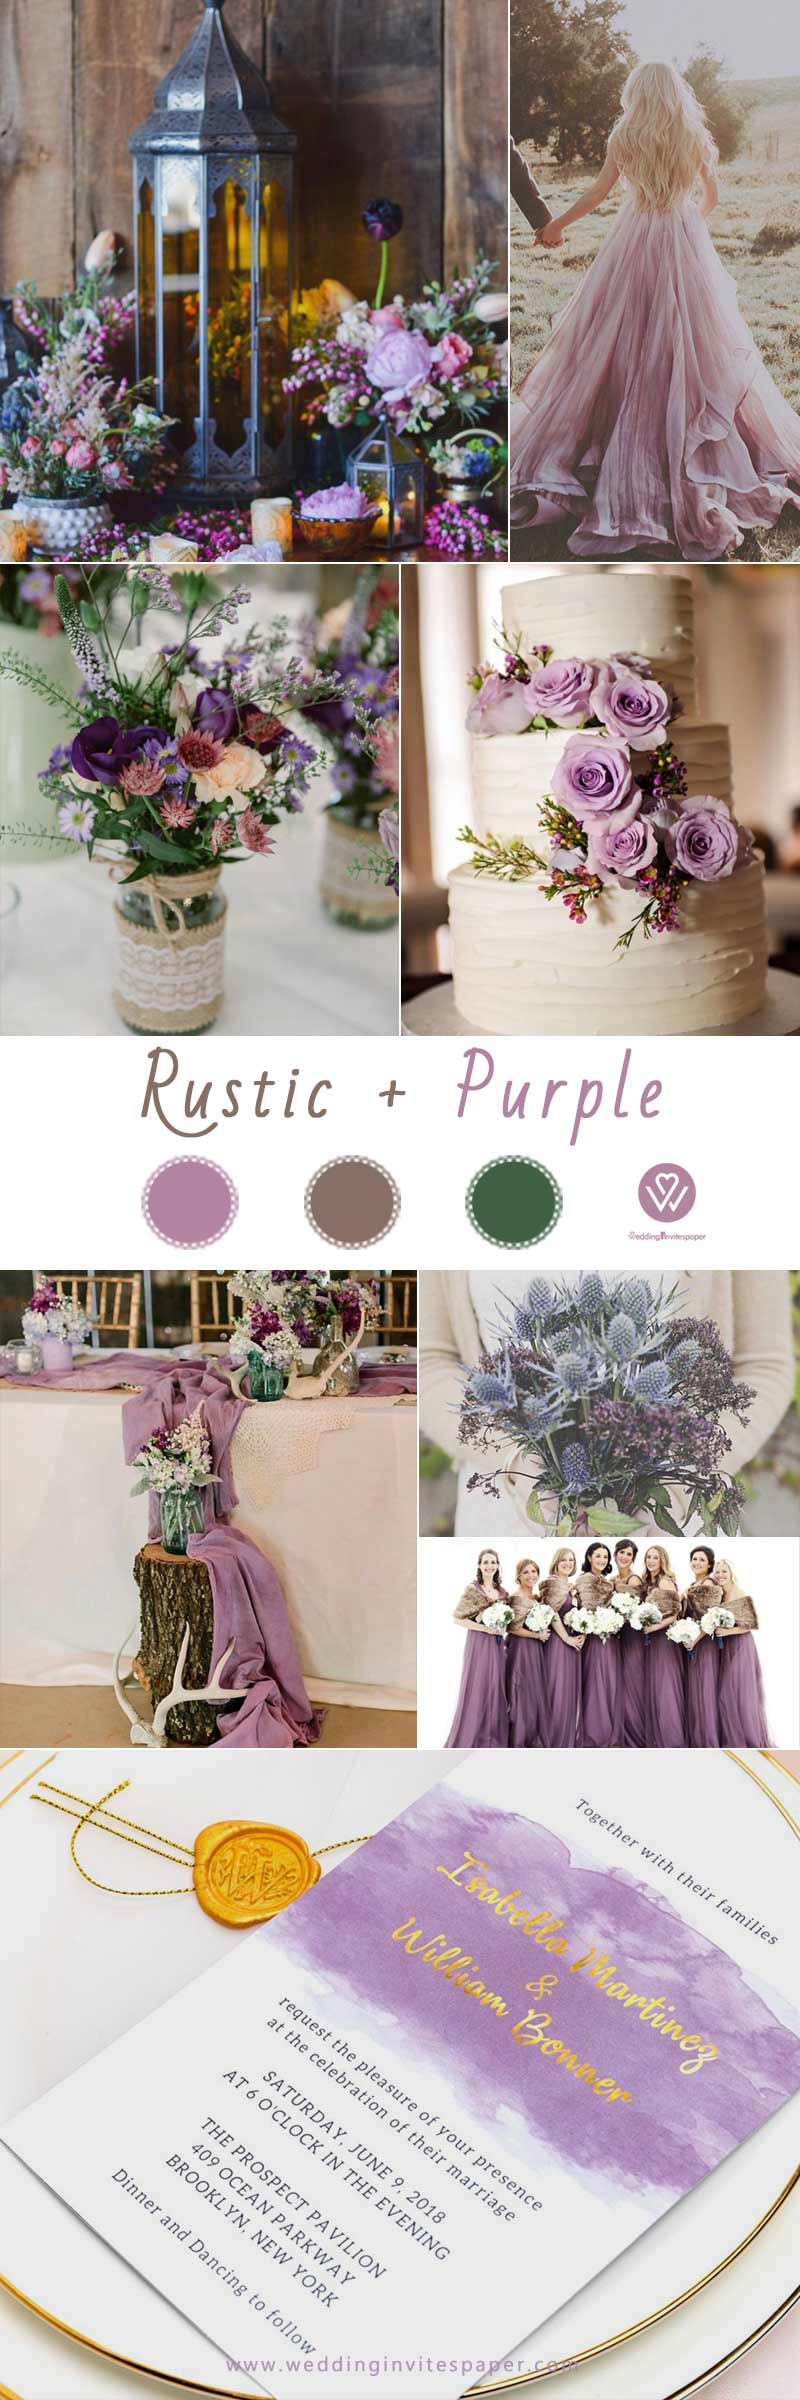 Rustic-+-Purple.jpg